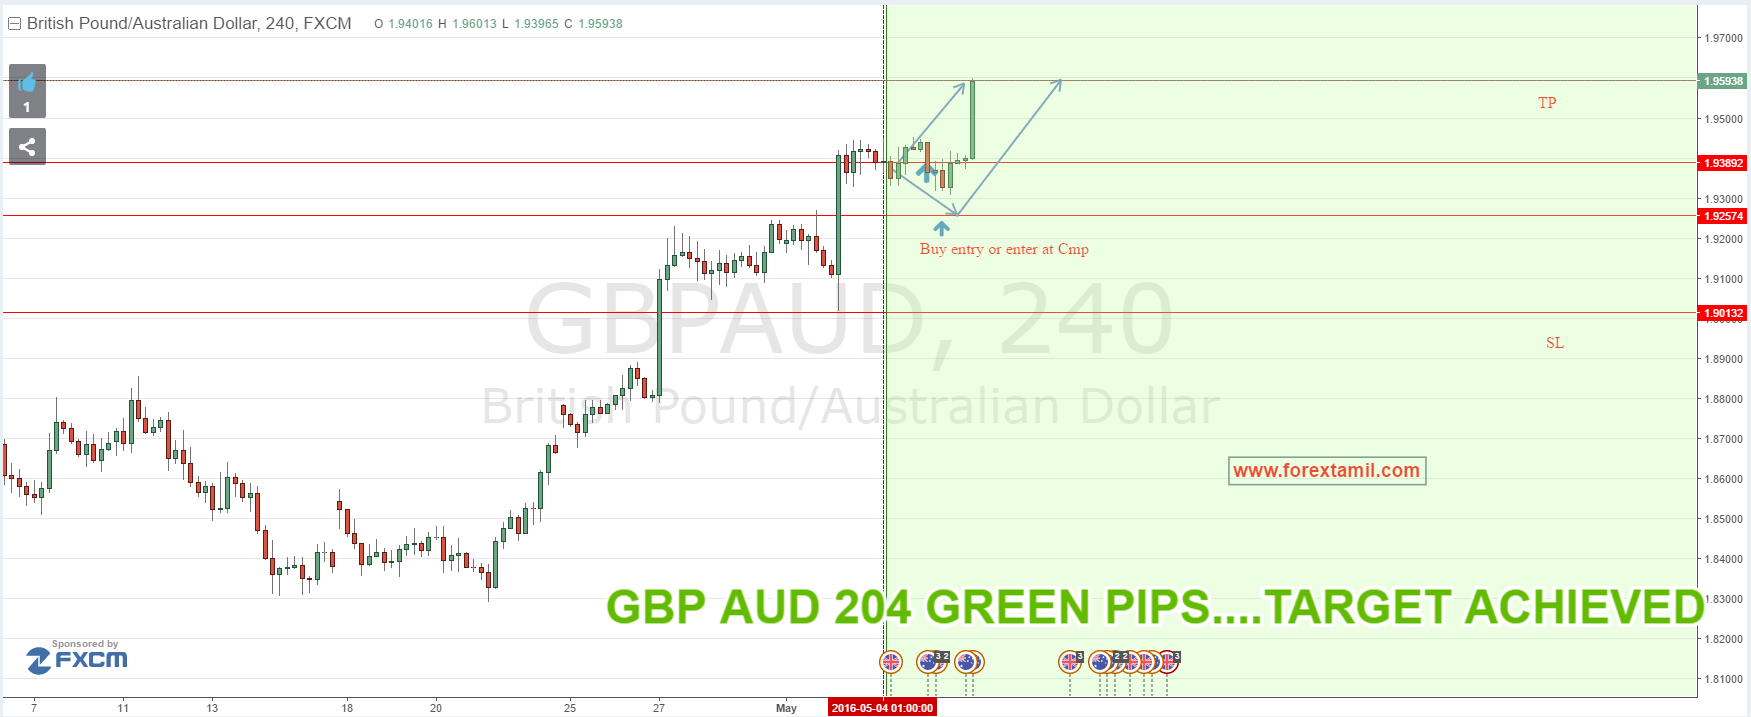 SURE SHOT SIGNAL RESULT: GBP/AUD 204 GREEN PIPS….TARGET ACHIEVED